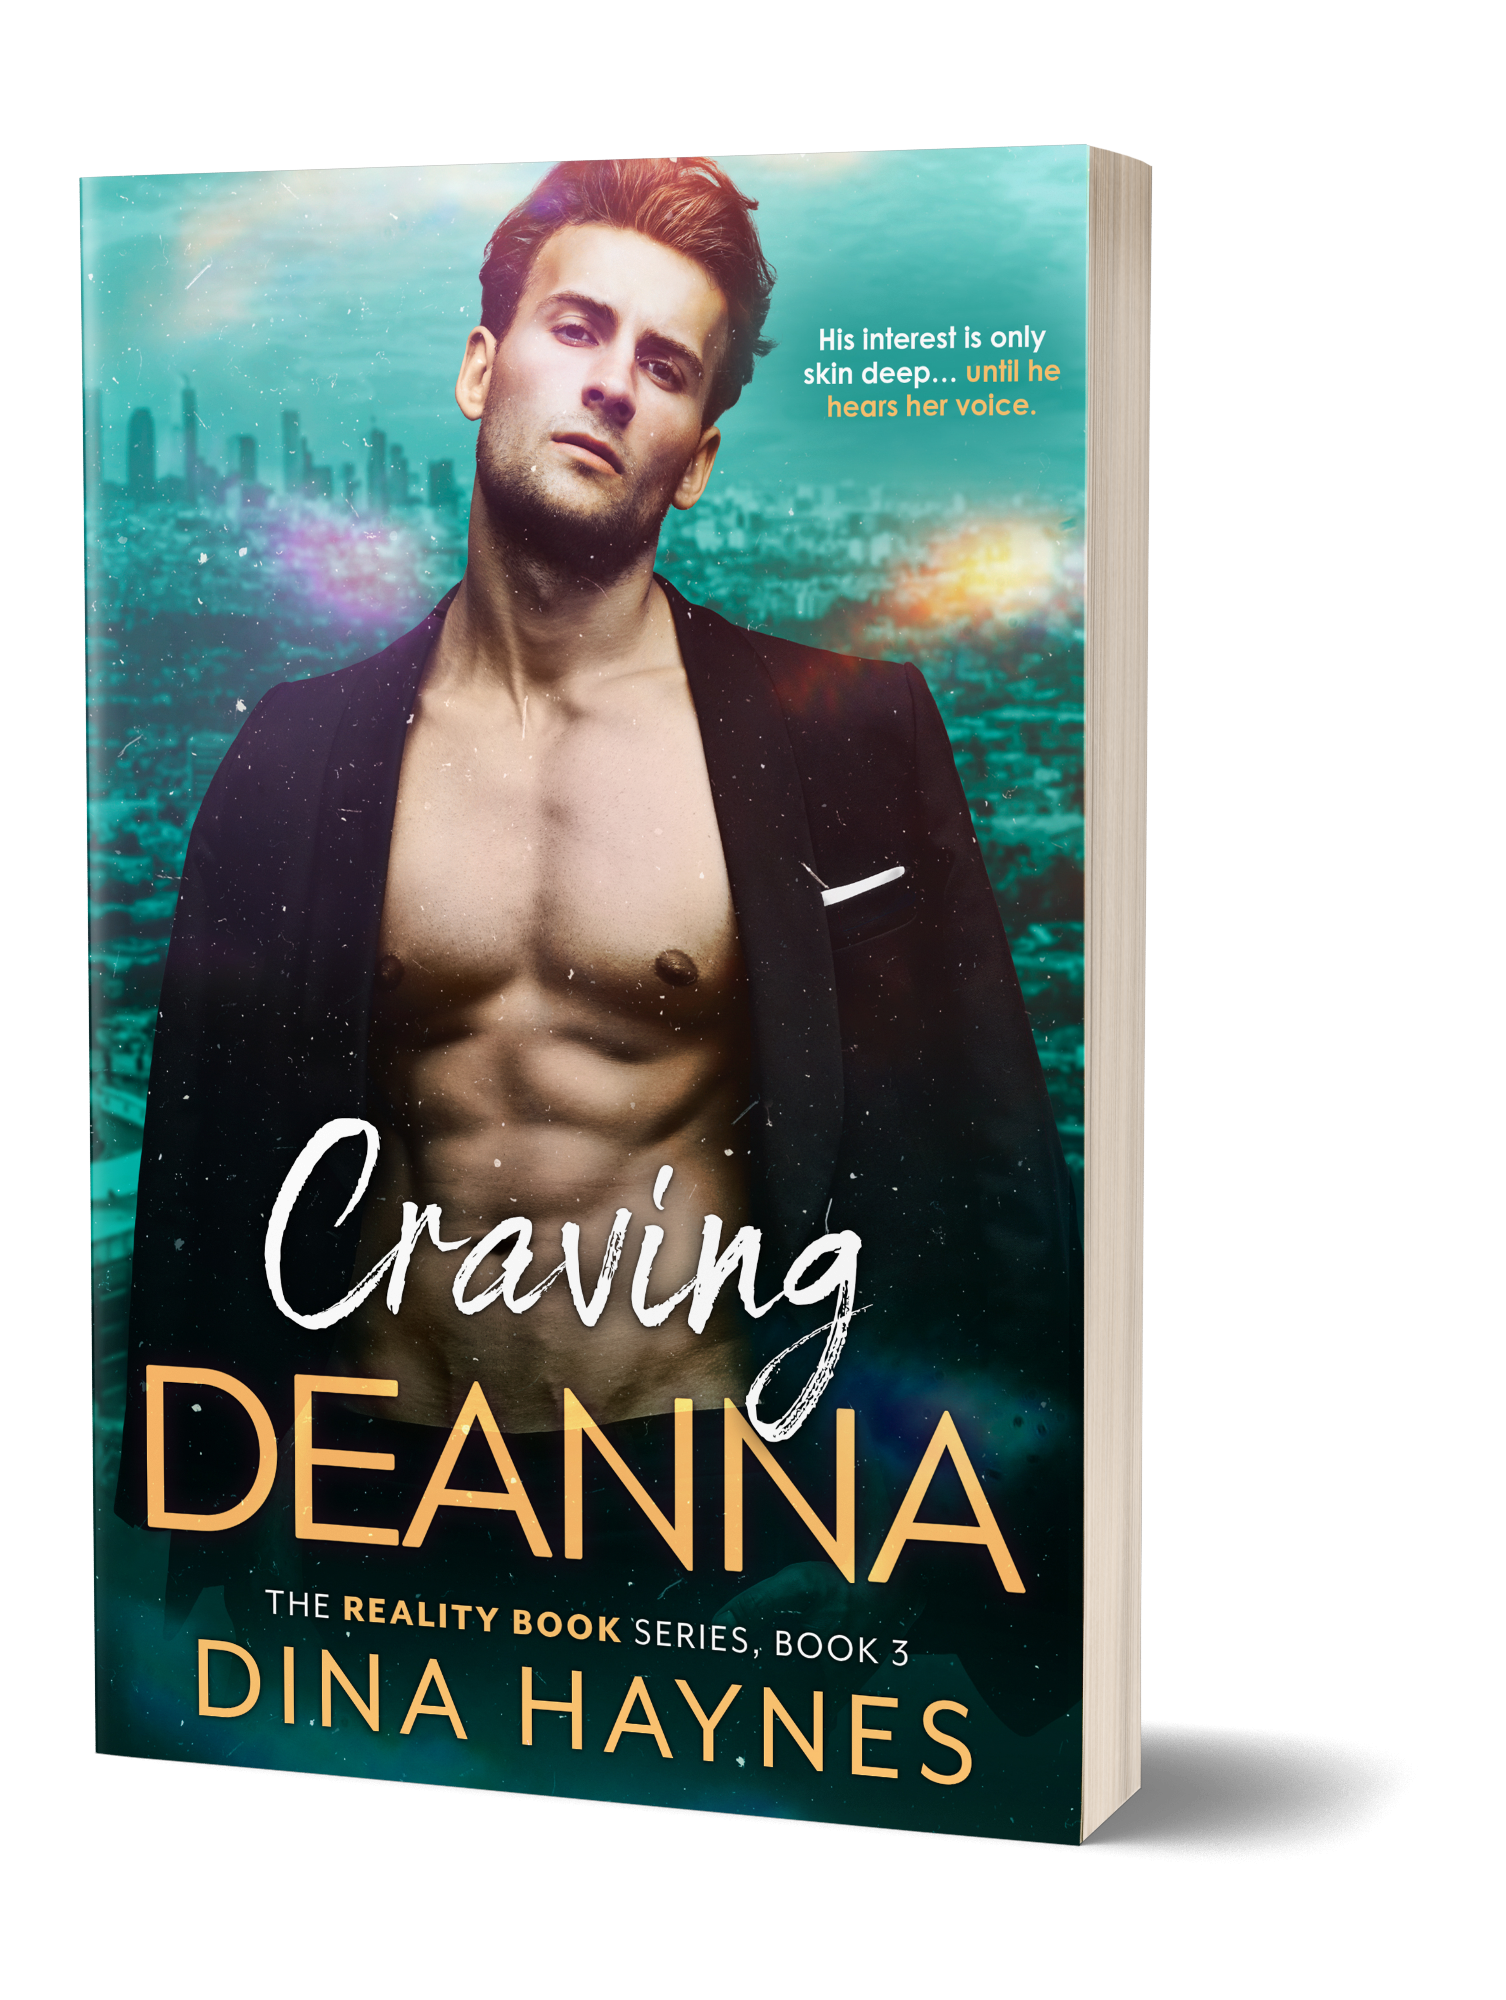 She's having more fun than she bargained for. His interest is only skin deep… until he hears her real voice.